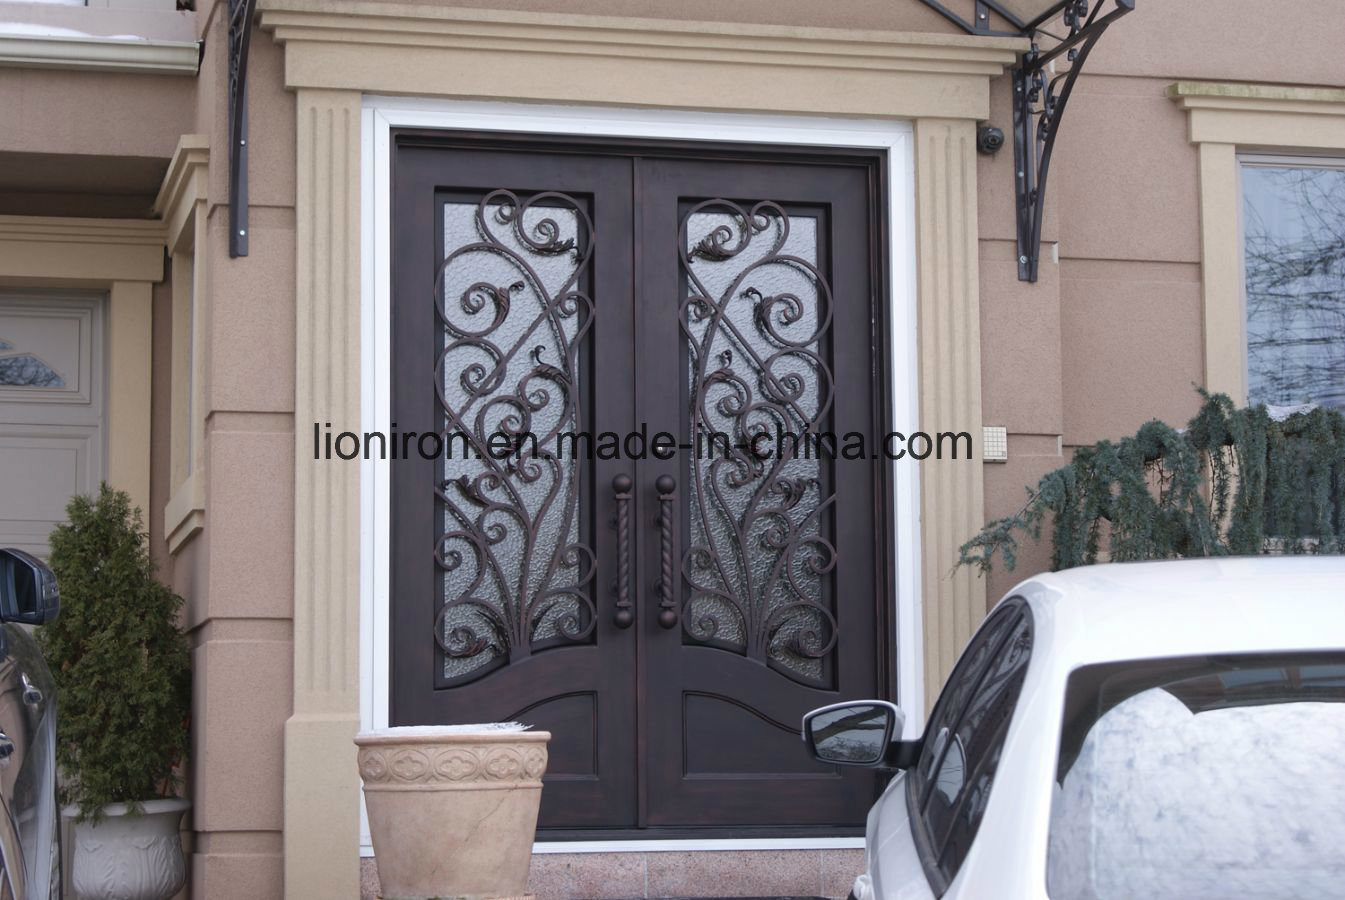 China Comtemporary Design Wrought Iron Screen Doors China Wrought